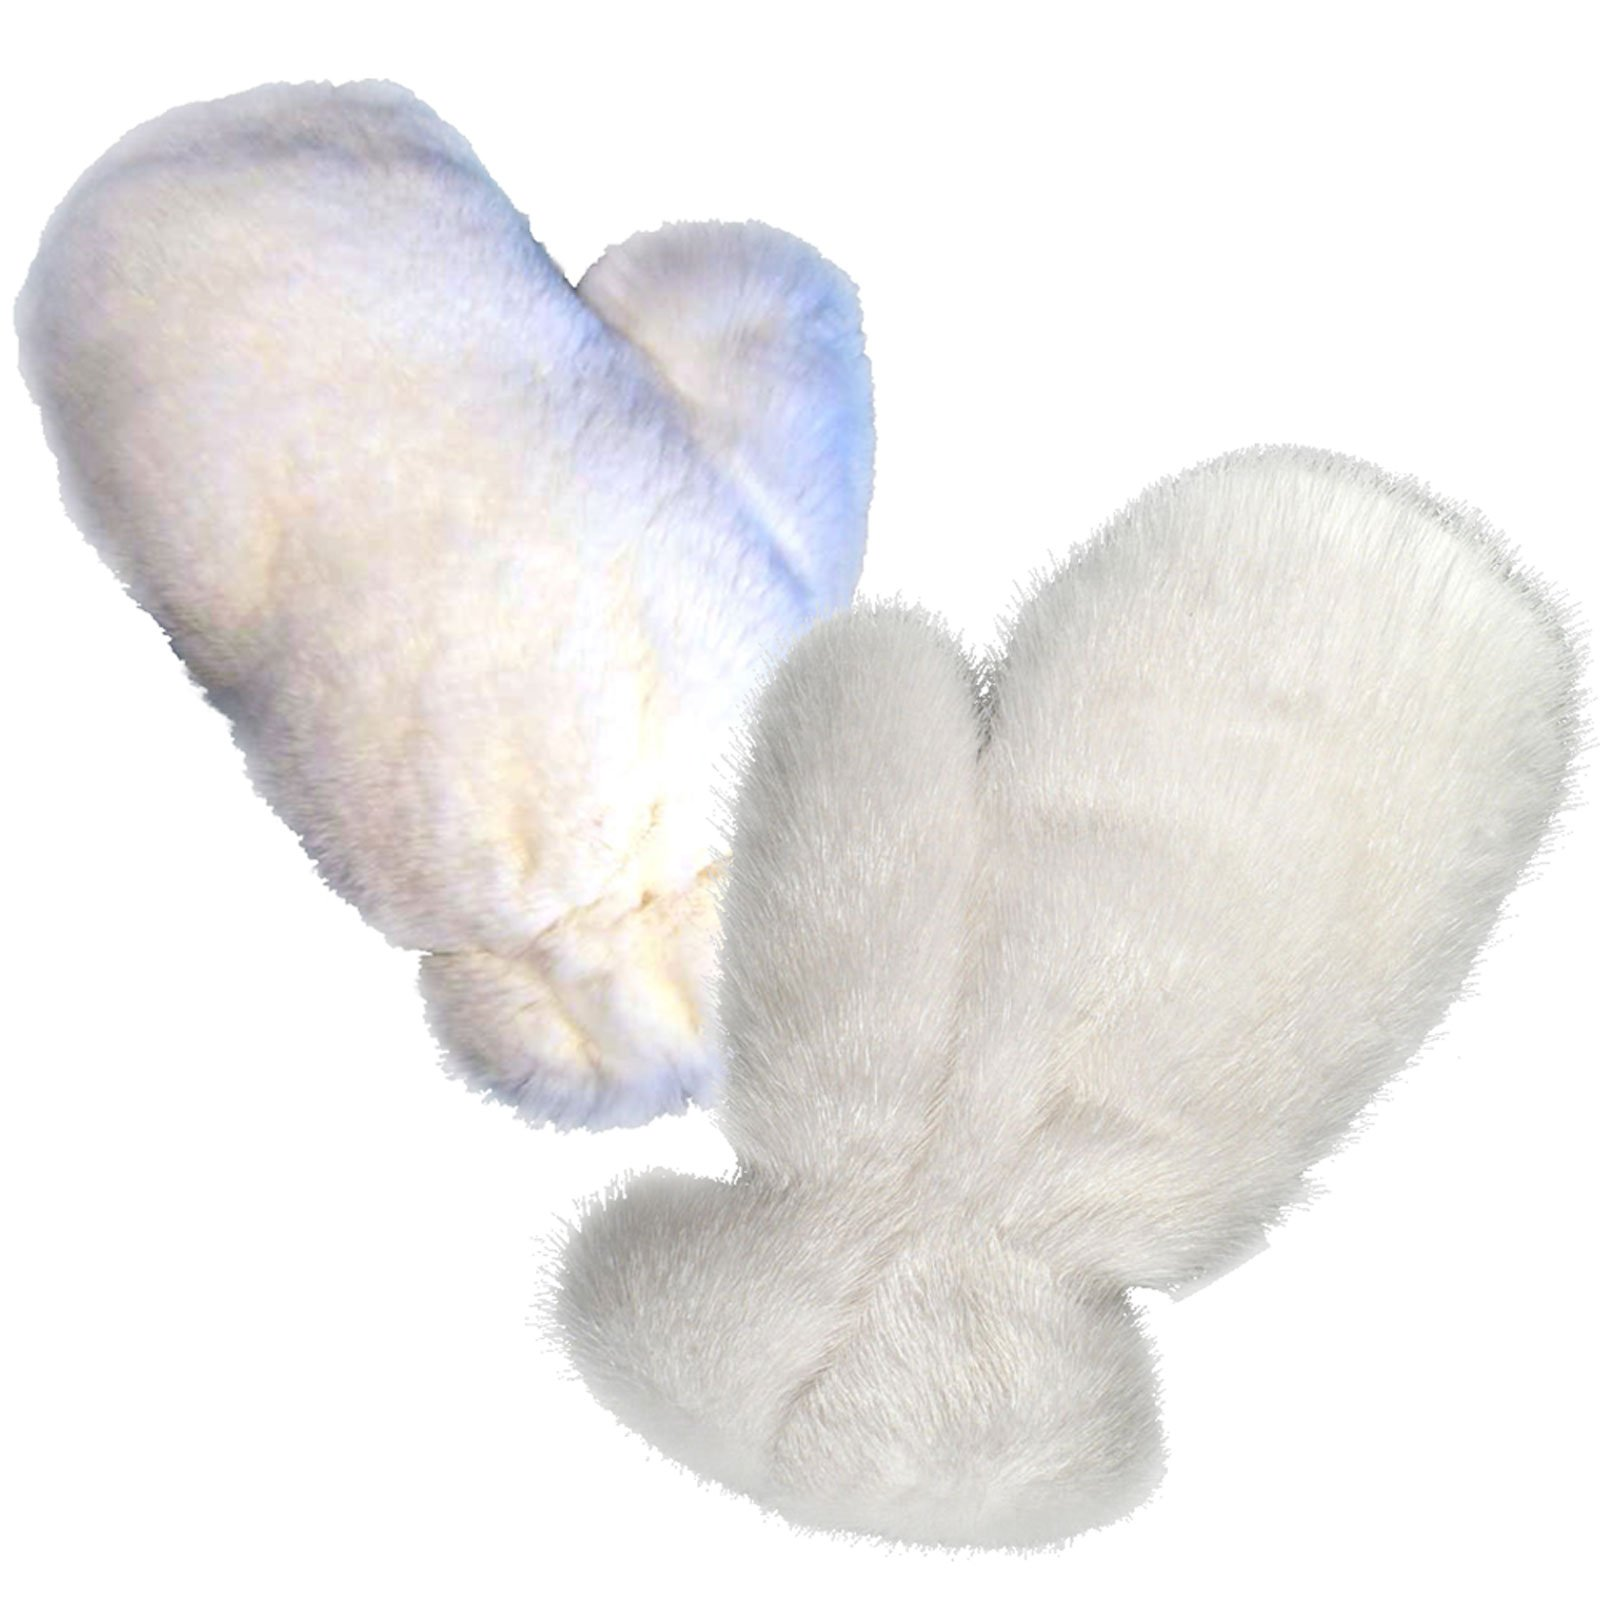 MinkgLove Combination Massage Glove, Mink and Rex Rabbit, Alternating Sensations Silky Smooth and Velvety Soft, White, Hand Tailored, Unisex - Double Sided Fur